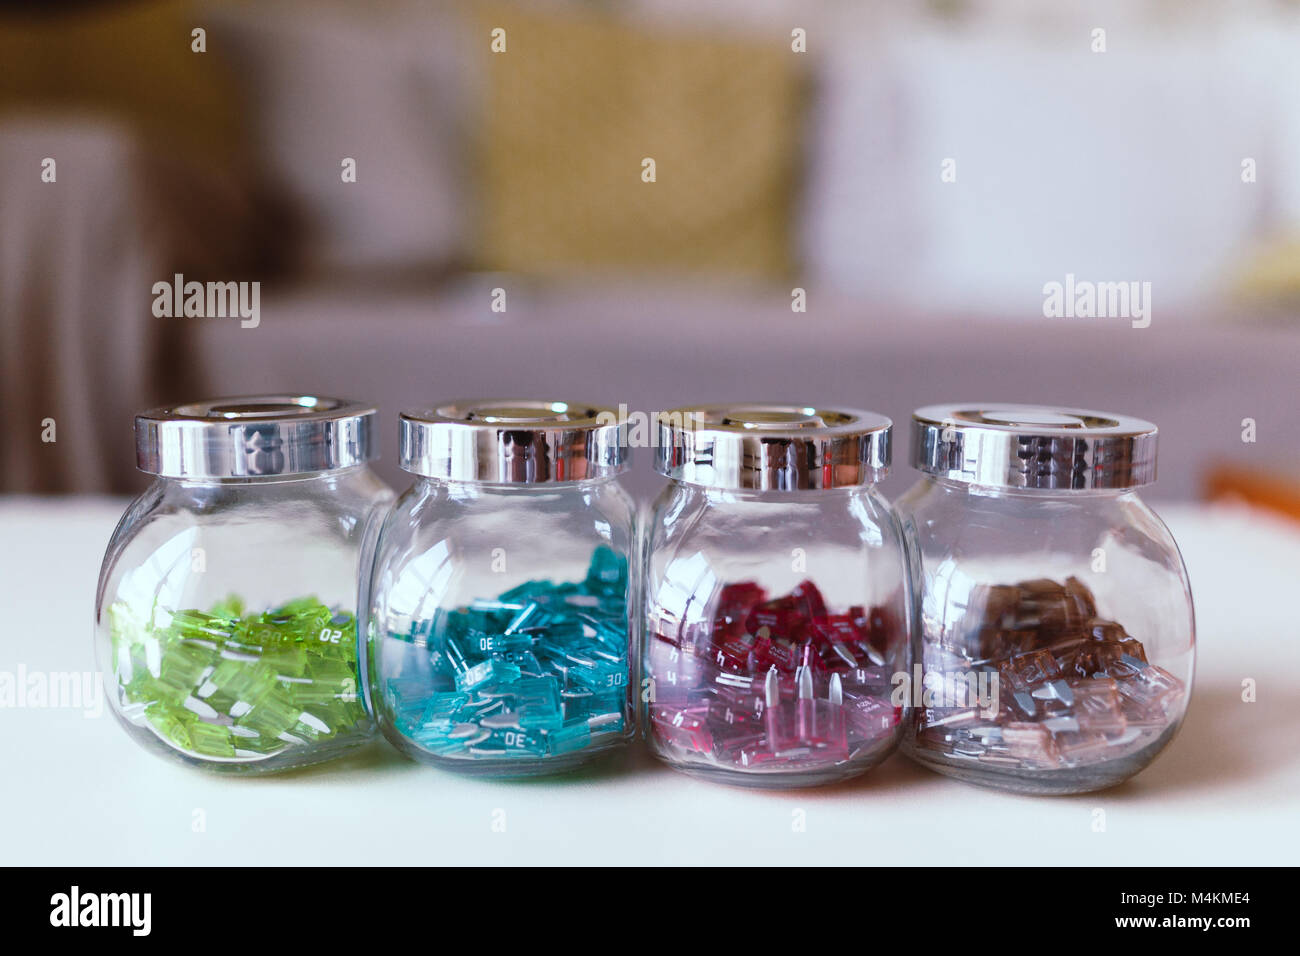 Electric Fuse Box Car Stock Photos Parts Colorful Mini Fuses In Kitchen Spice Rack On Desk Soft Focus